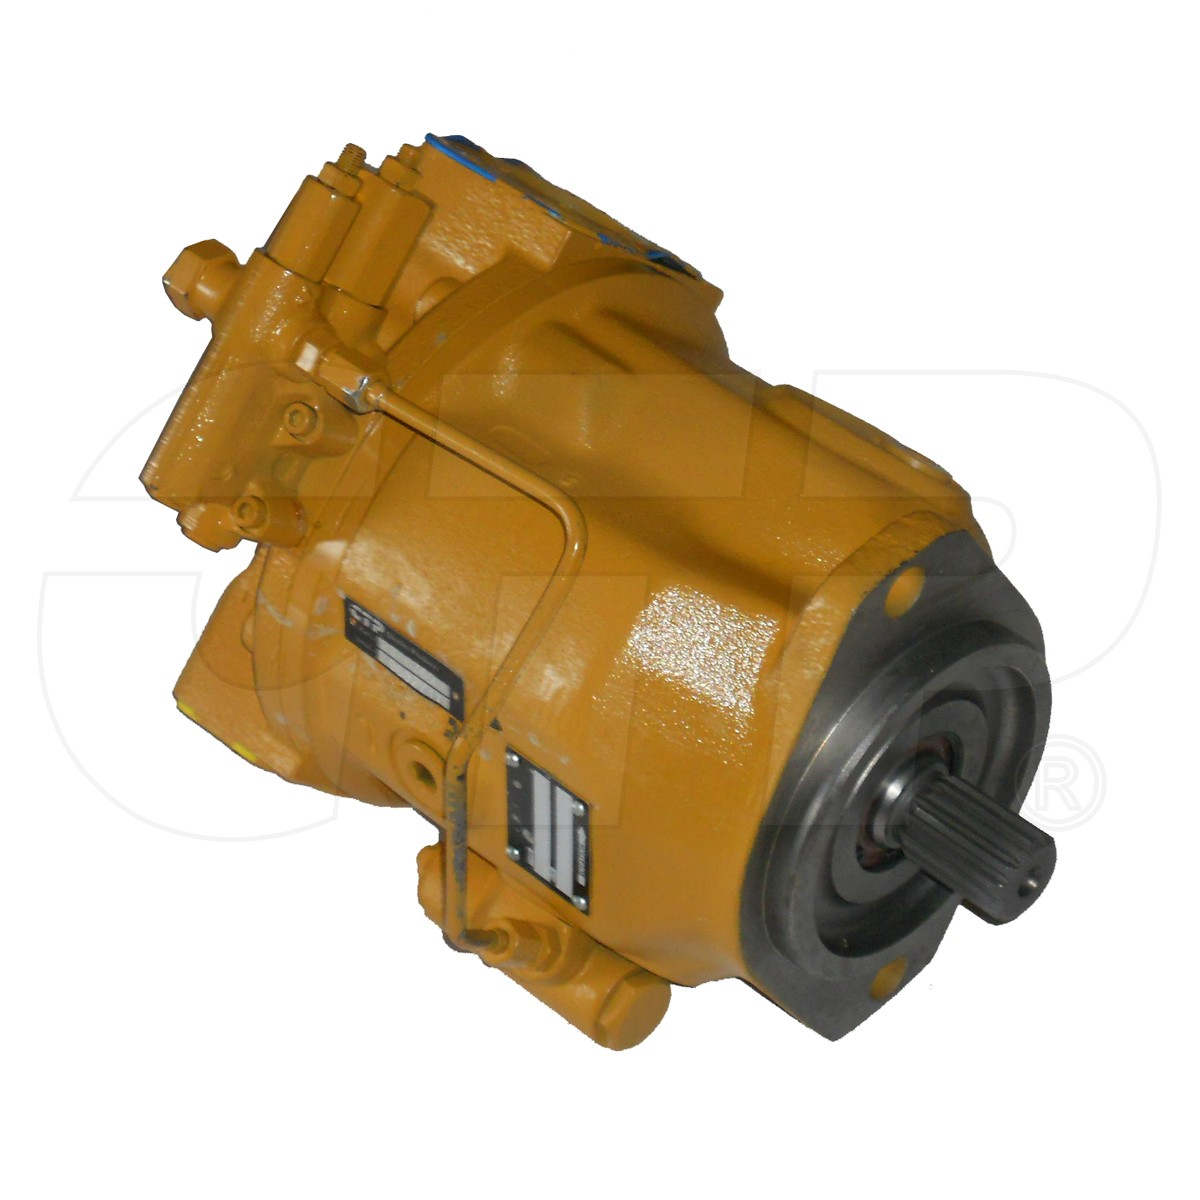 Caterpillar 2205623 Hydraulic Pump